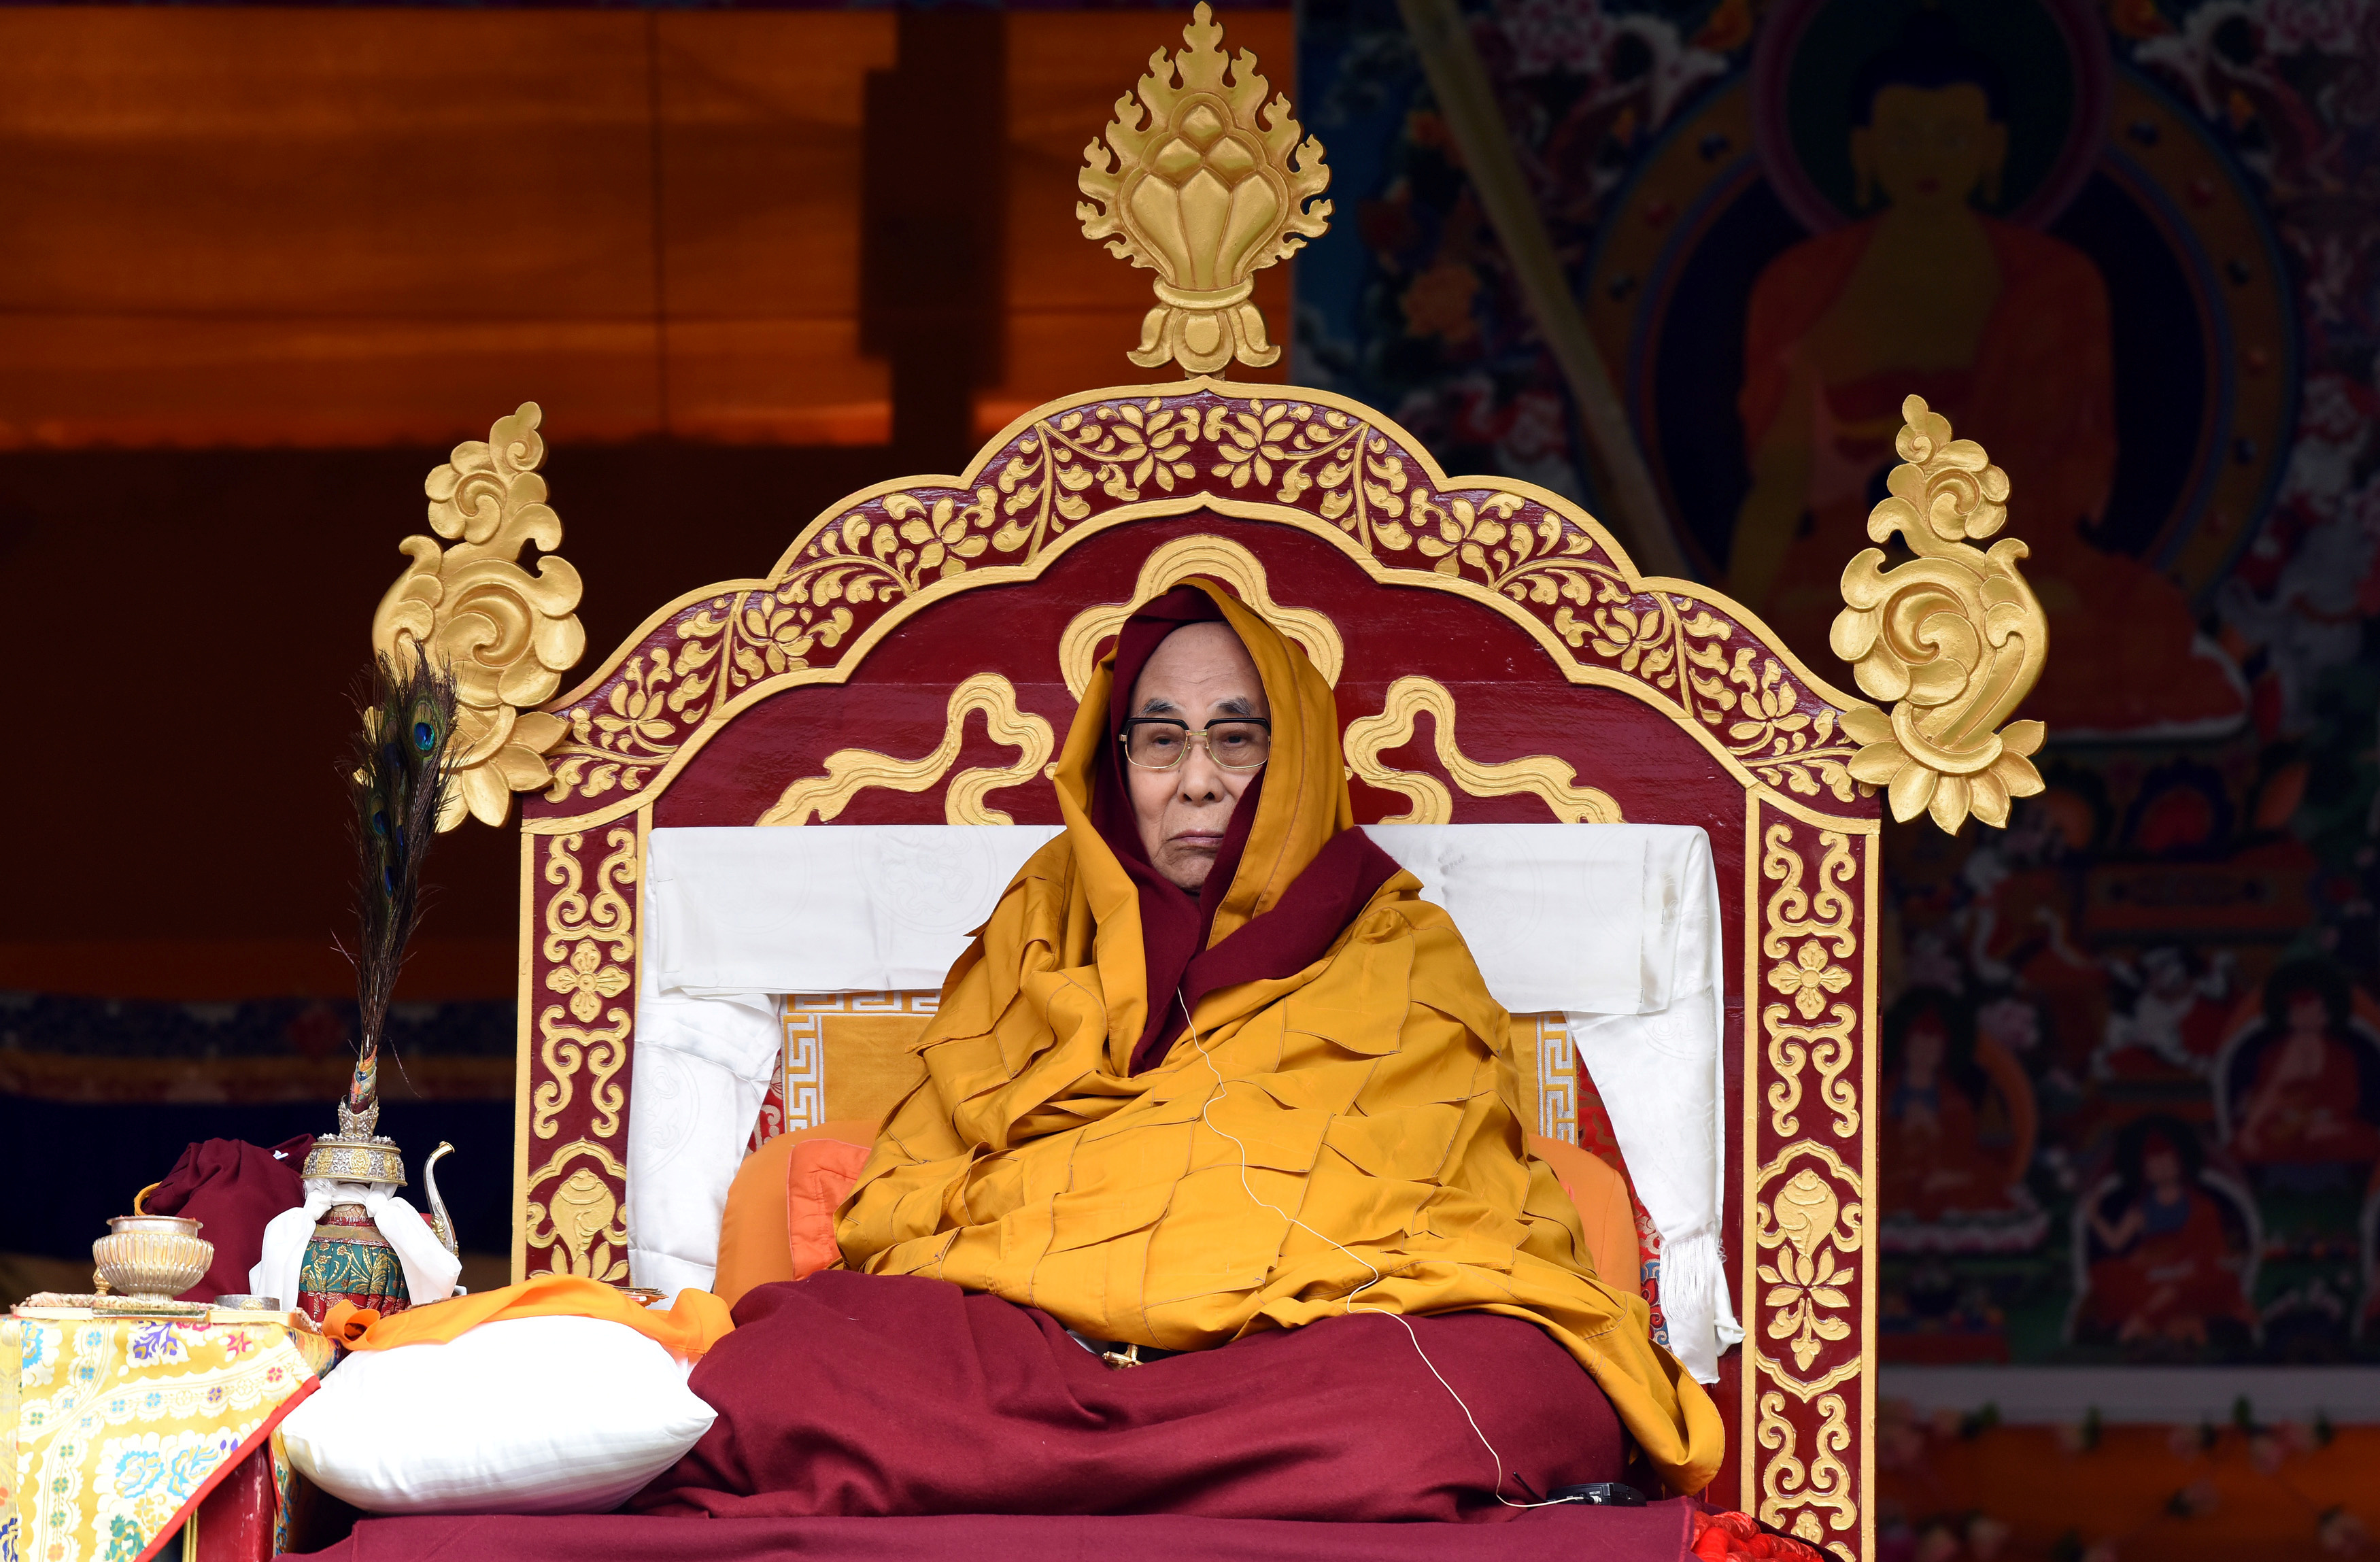 The Dalai Lama. Credit: Anuwar Hazarika/Reuters